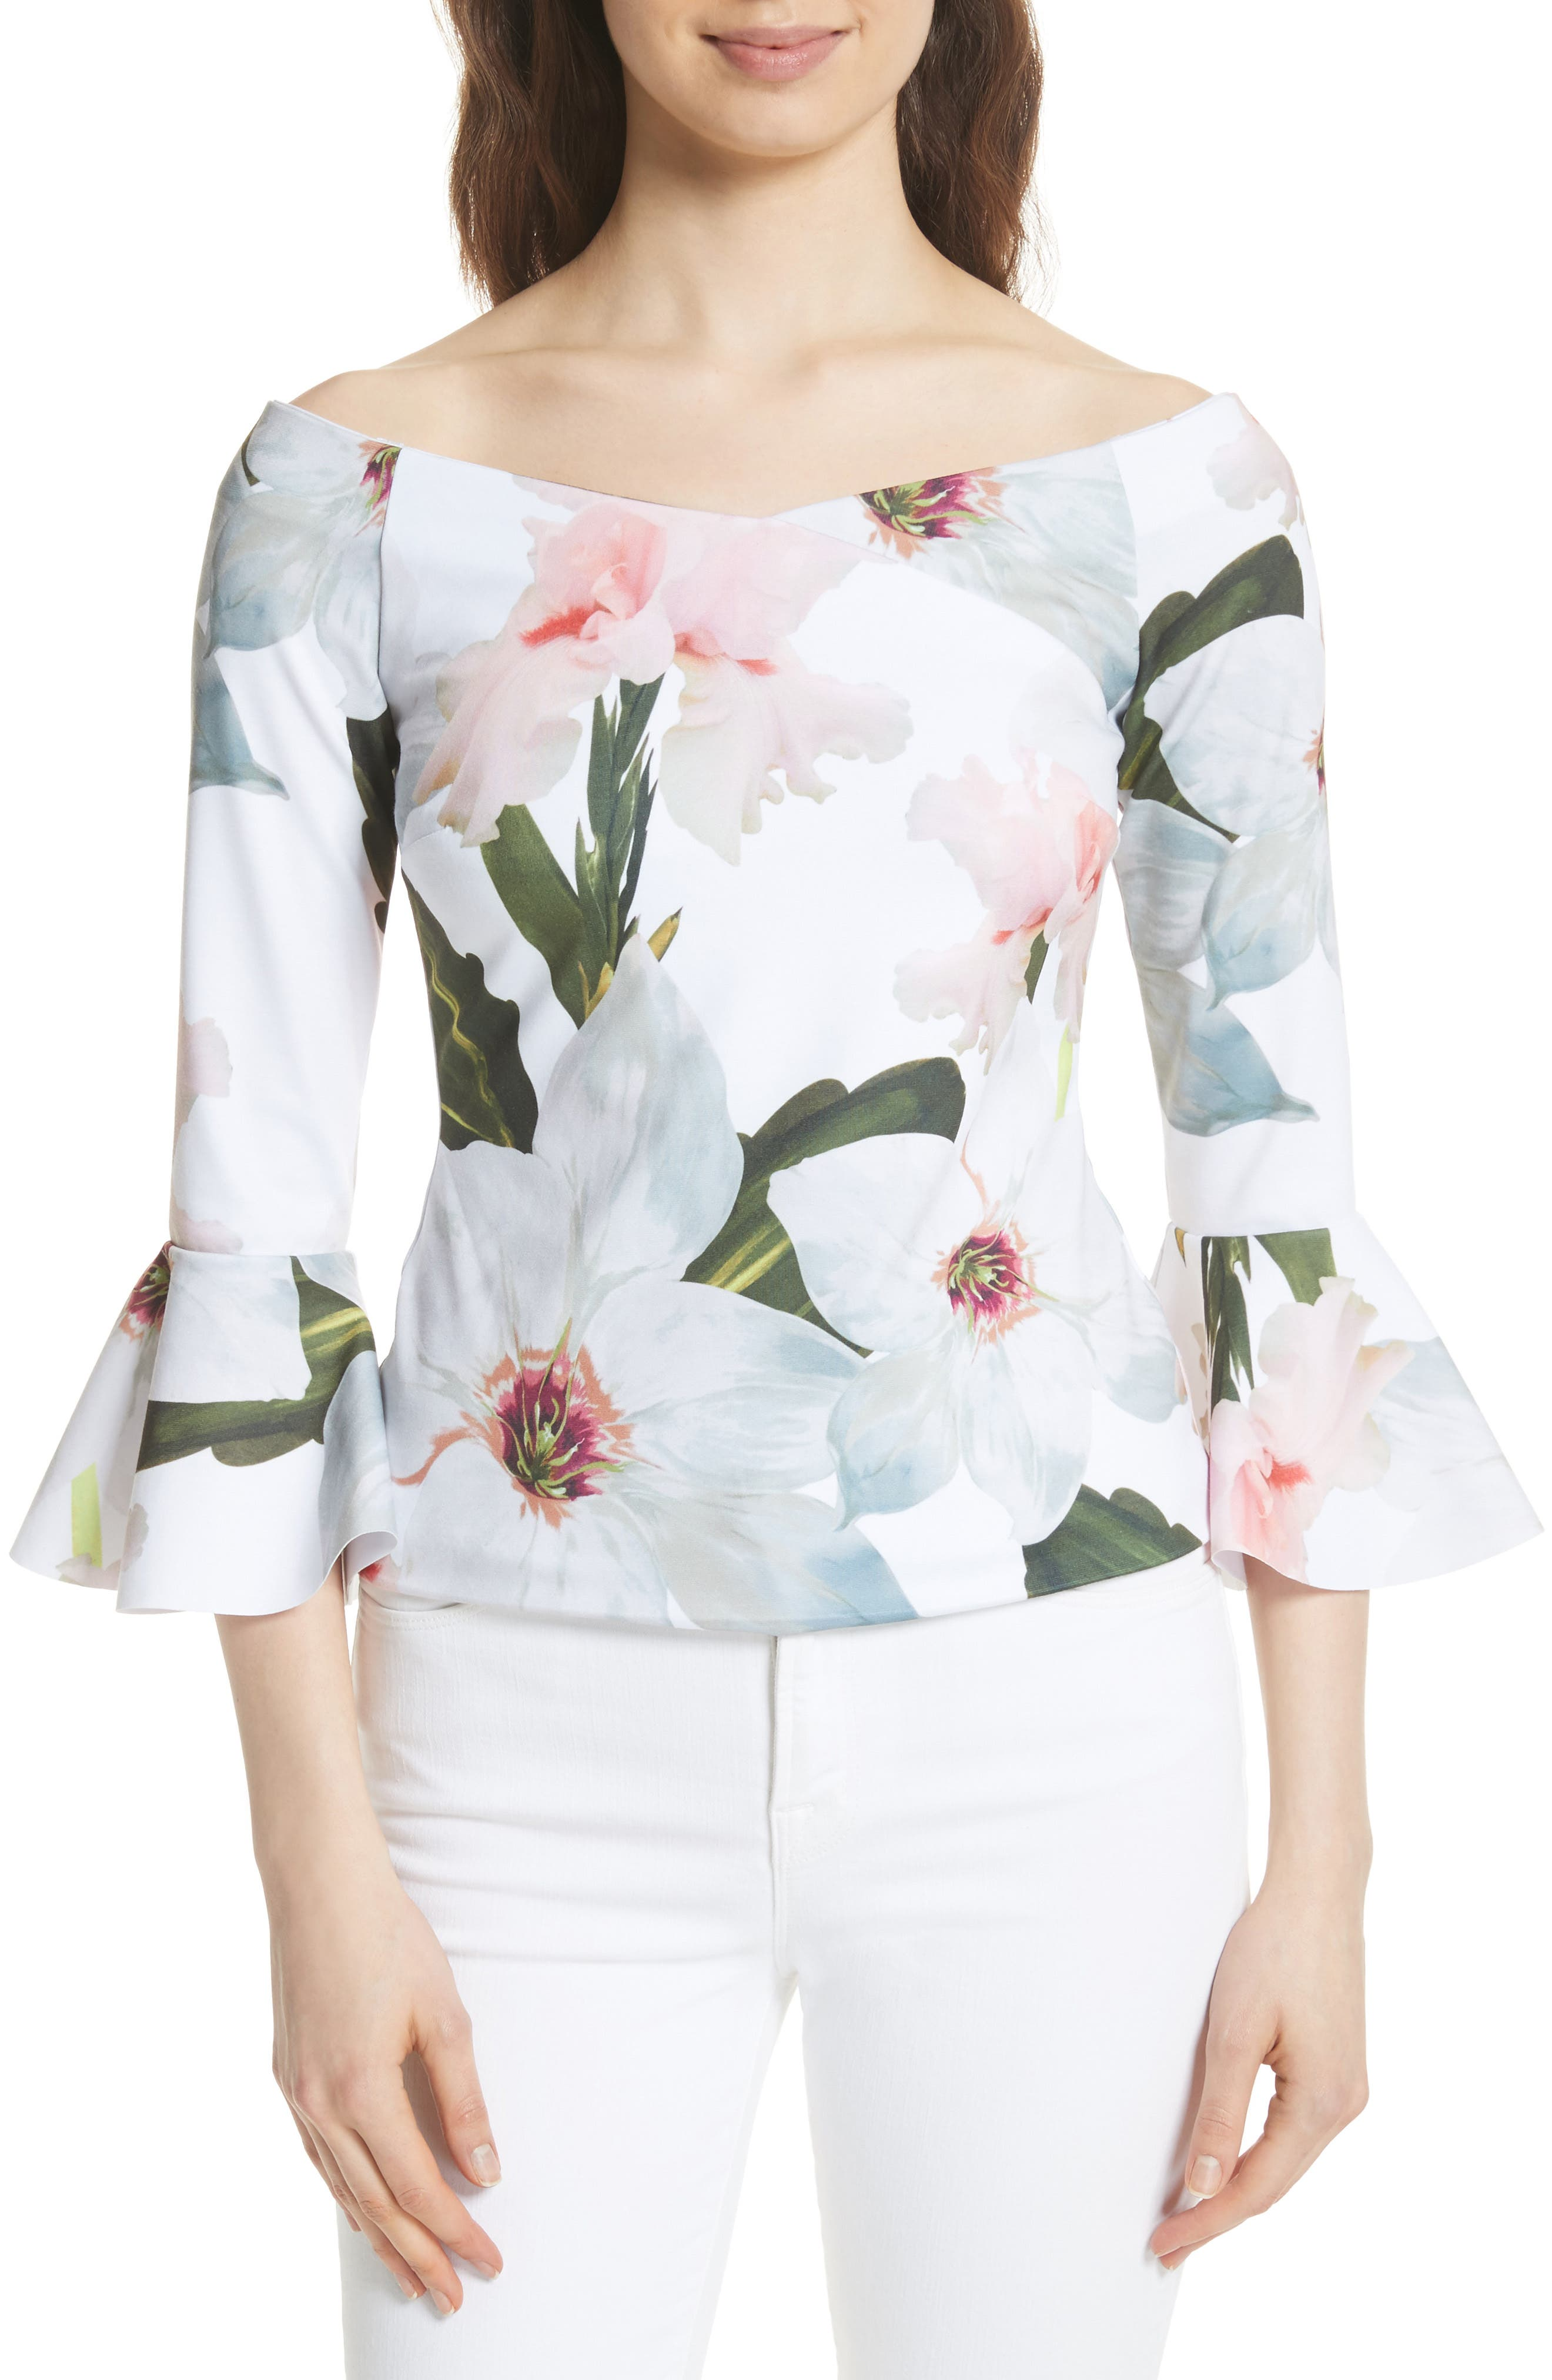 Chatsworth Bloom Top,                         Main,                         color, 110